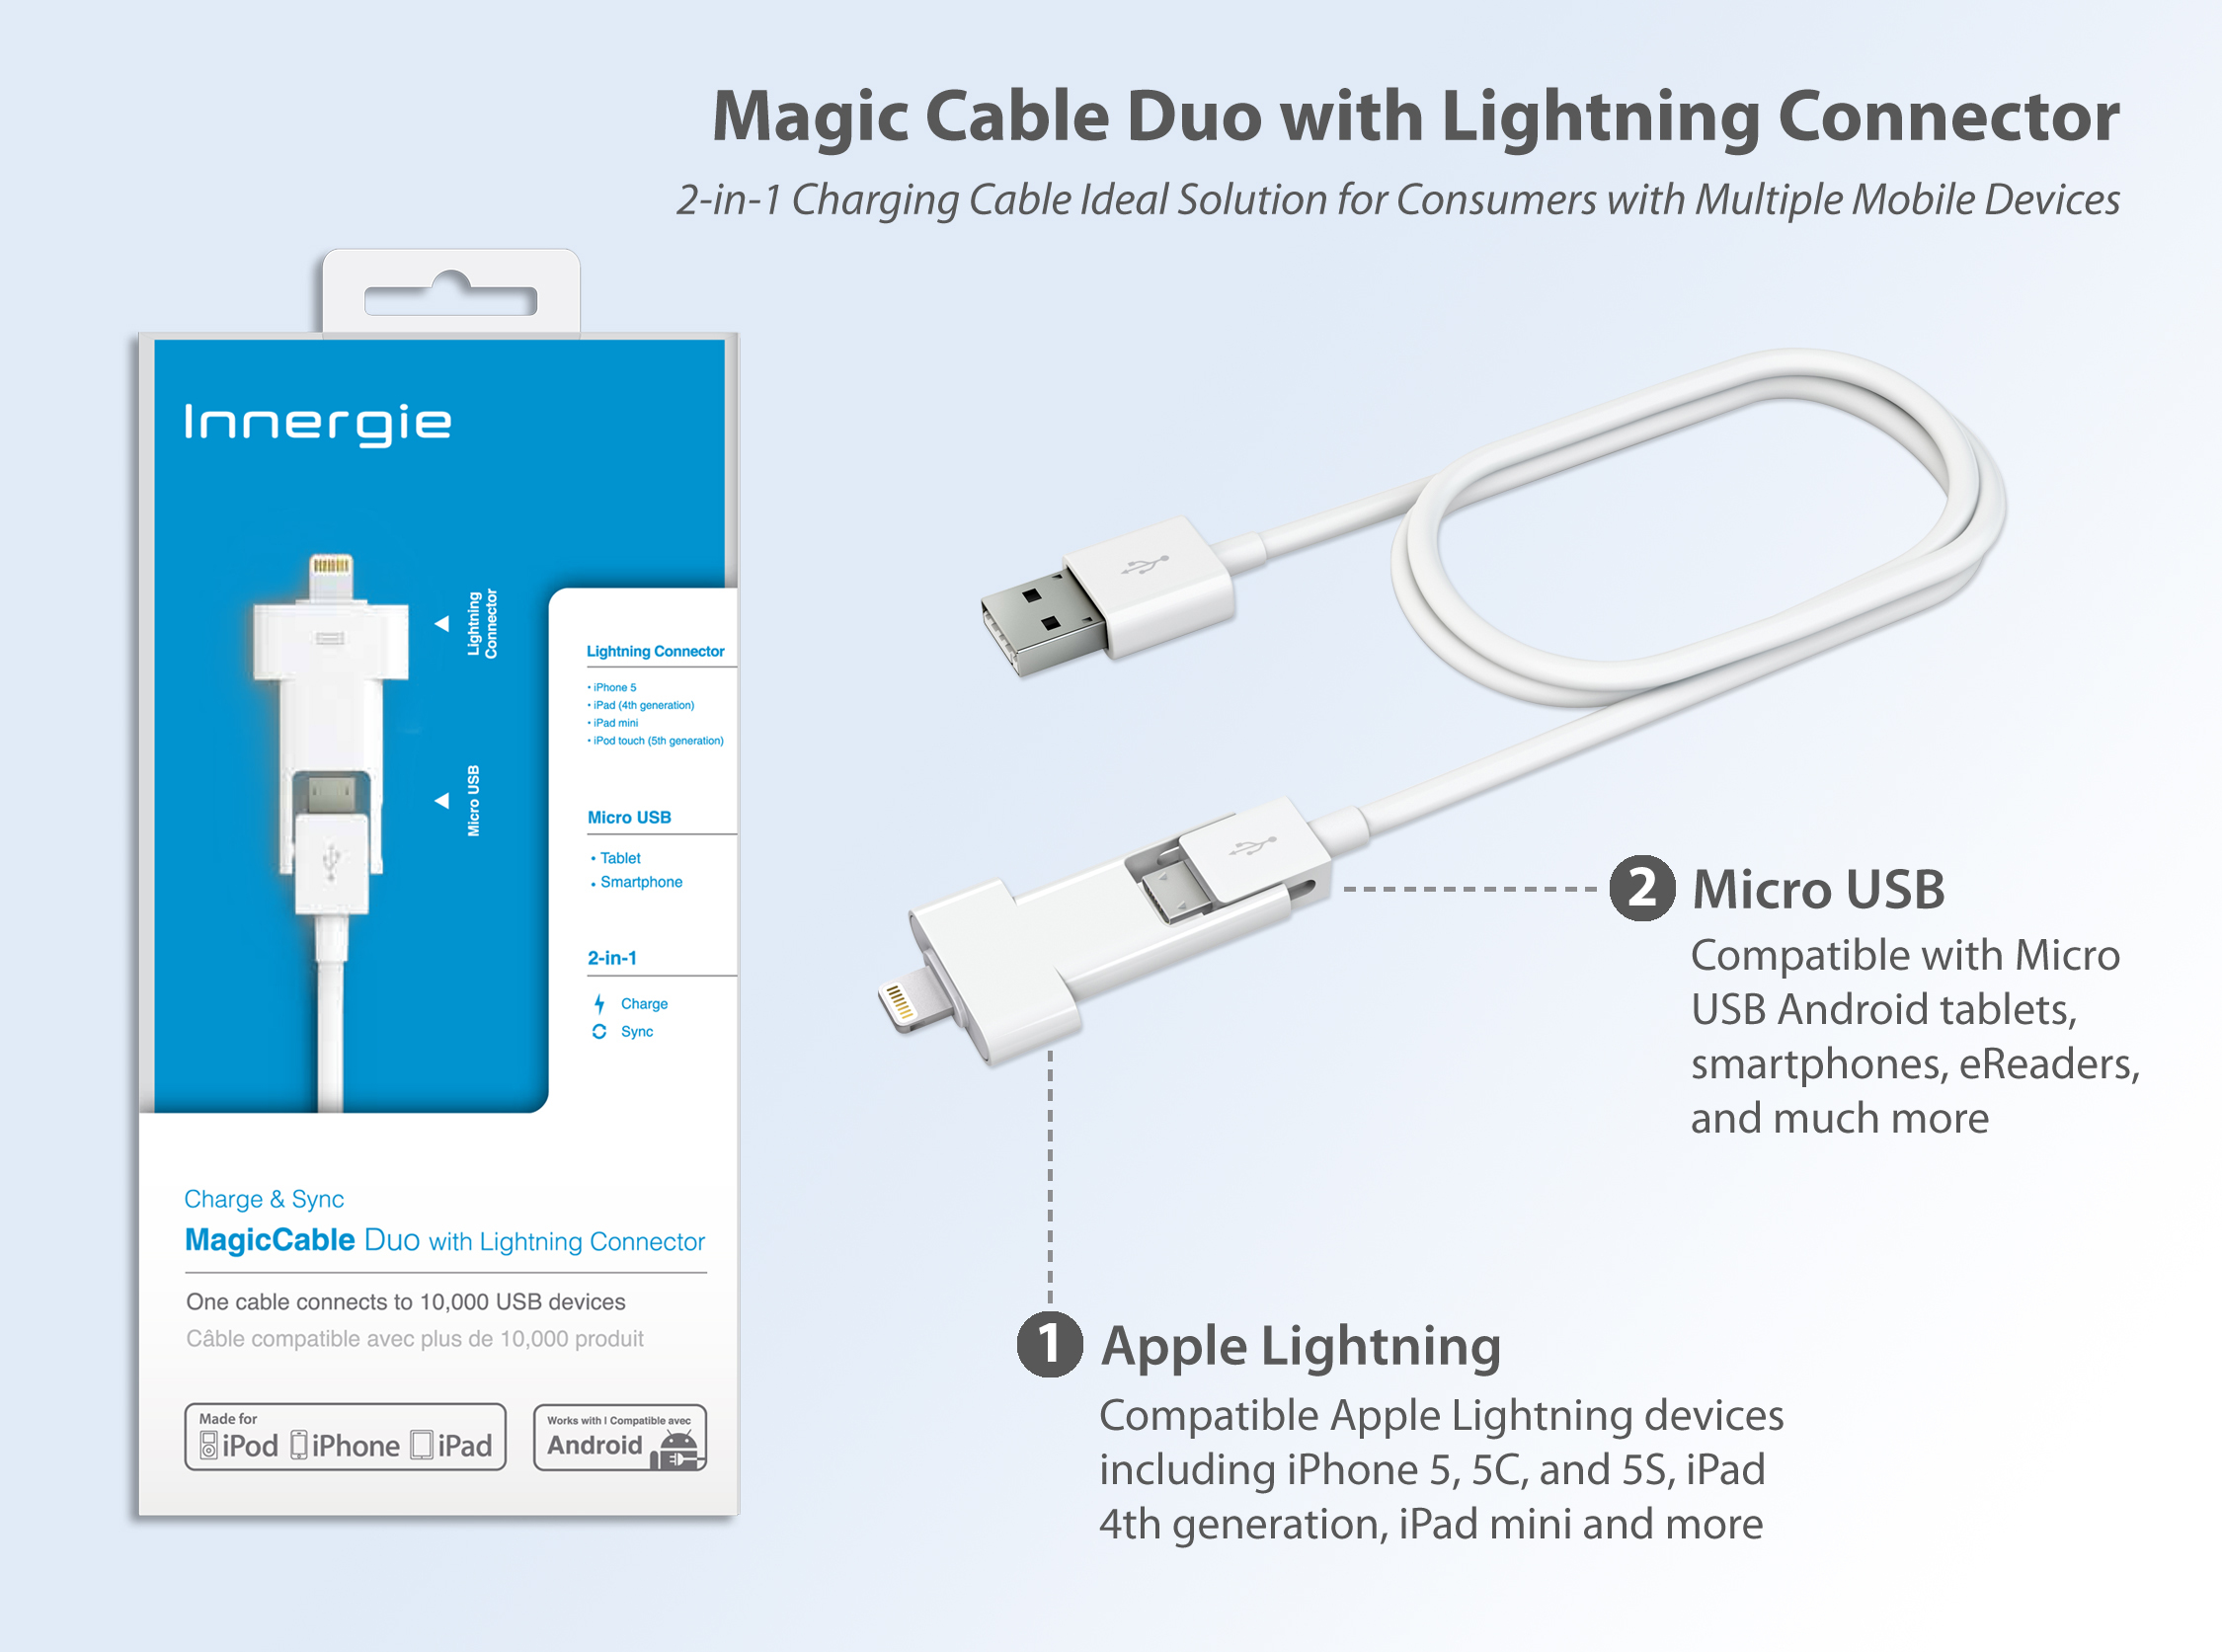 Apple Connector Wiring Diagram : Innergie introduces magicable™ duo with lightning